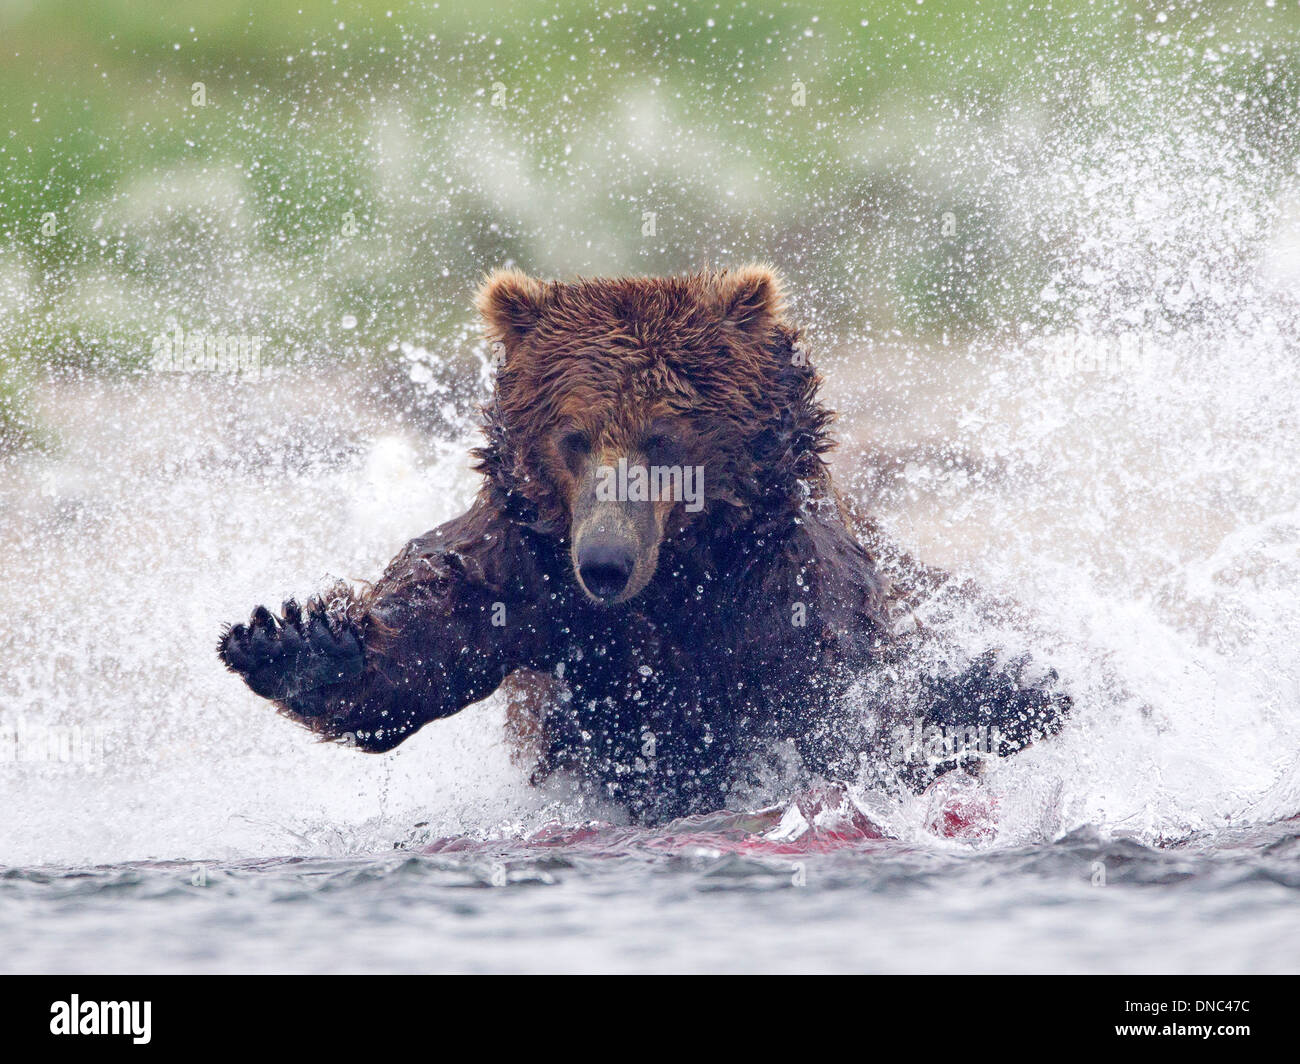 Alaskan Brown Bear Charging into River to Catch Salmon - Stock Image